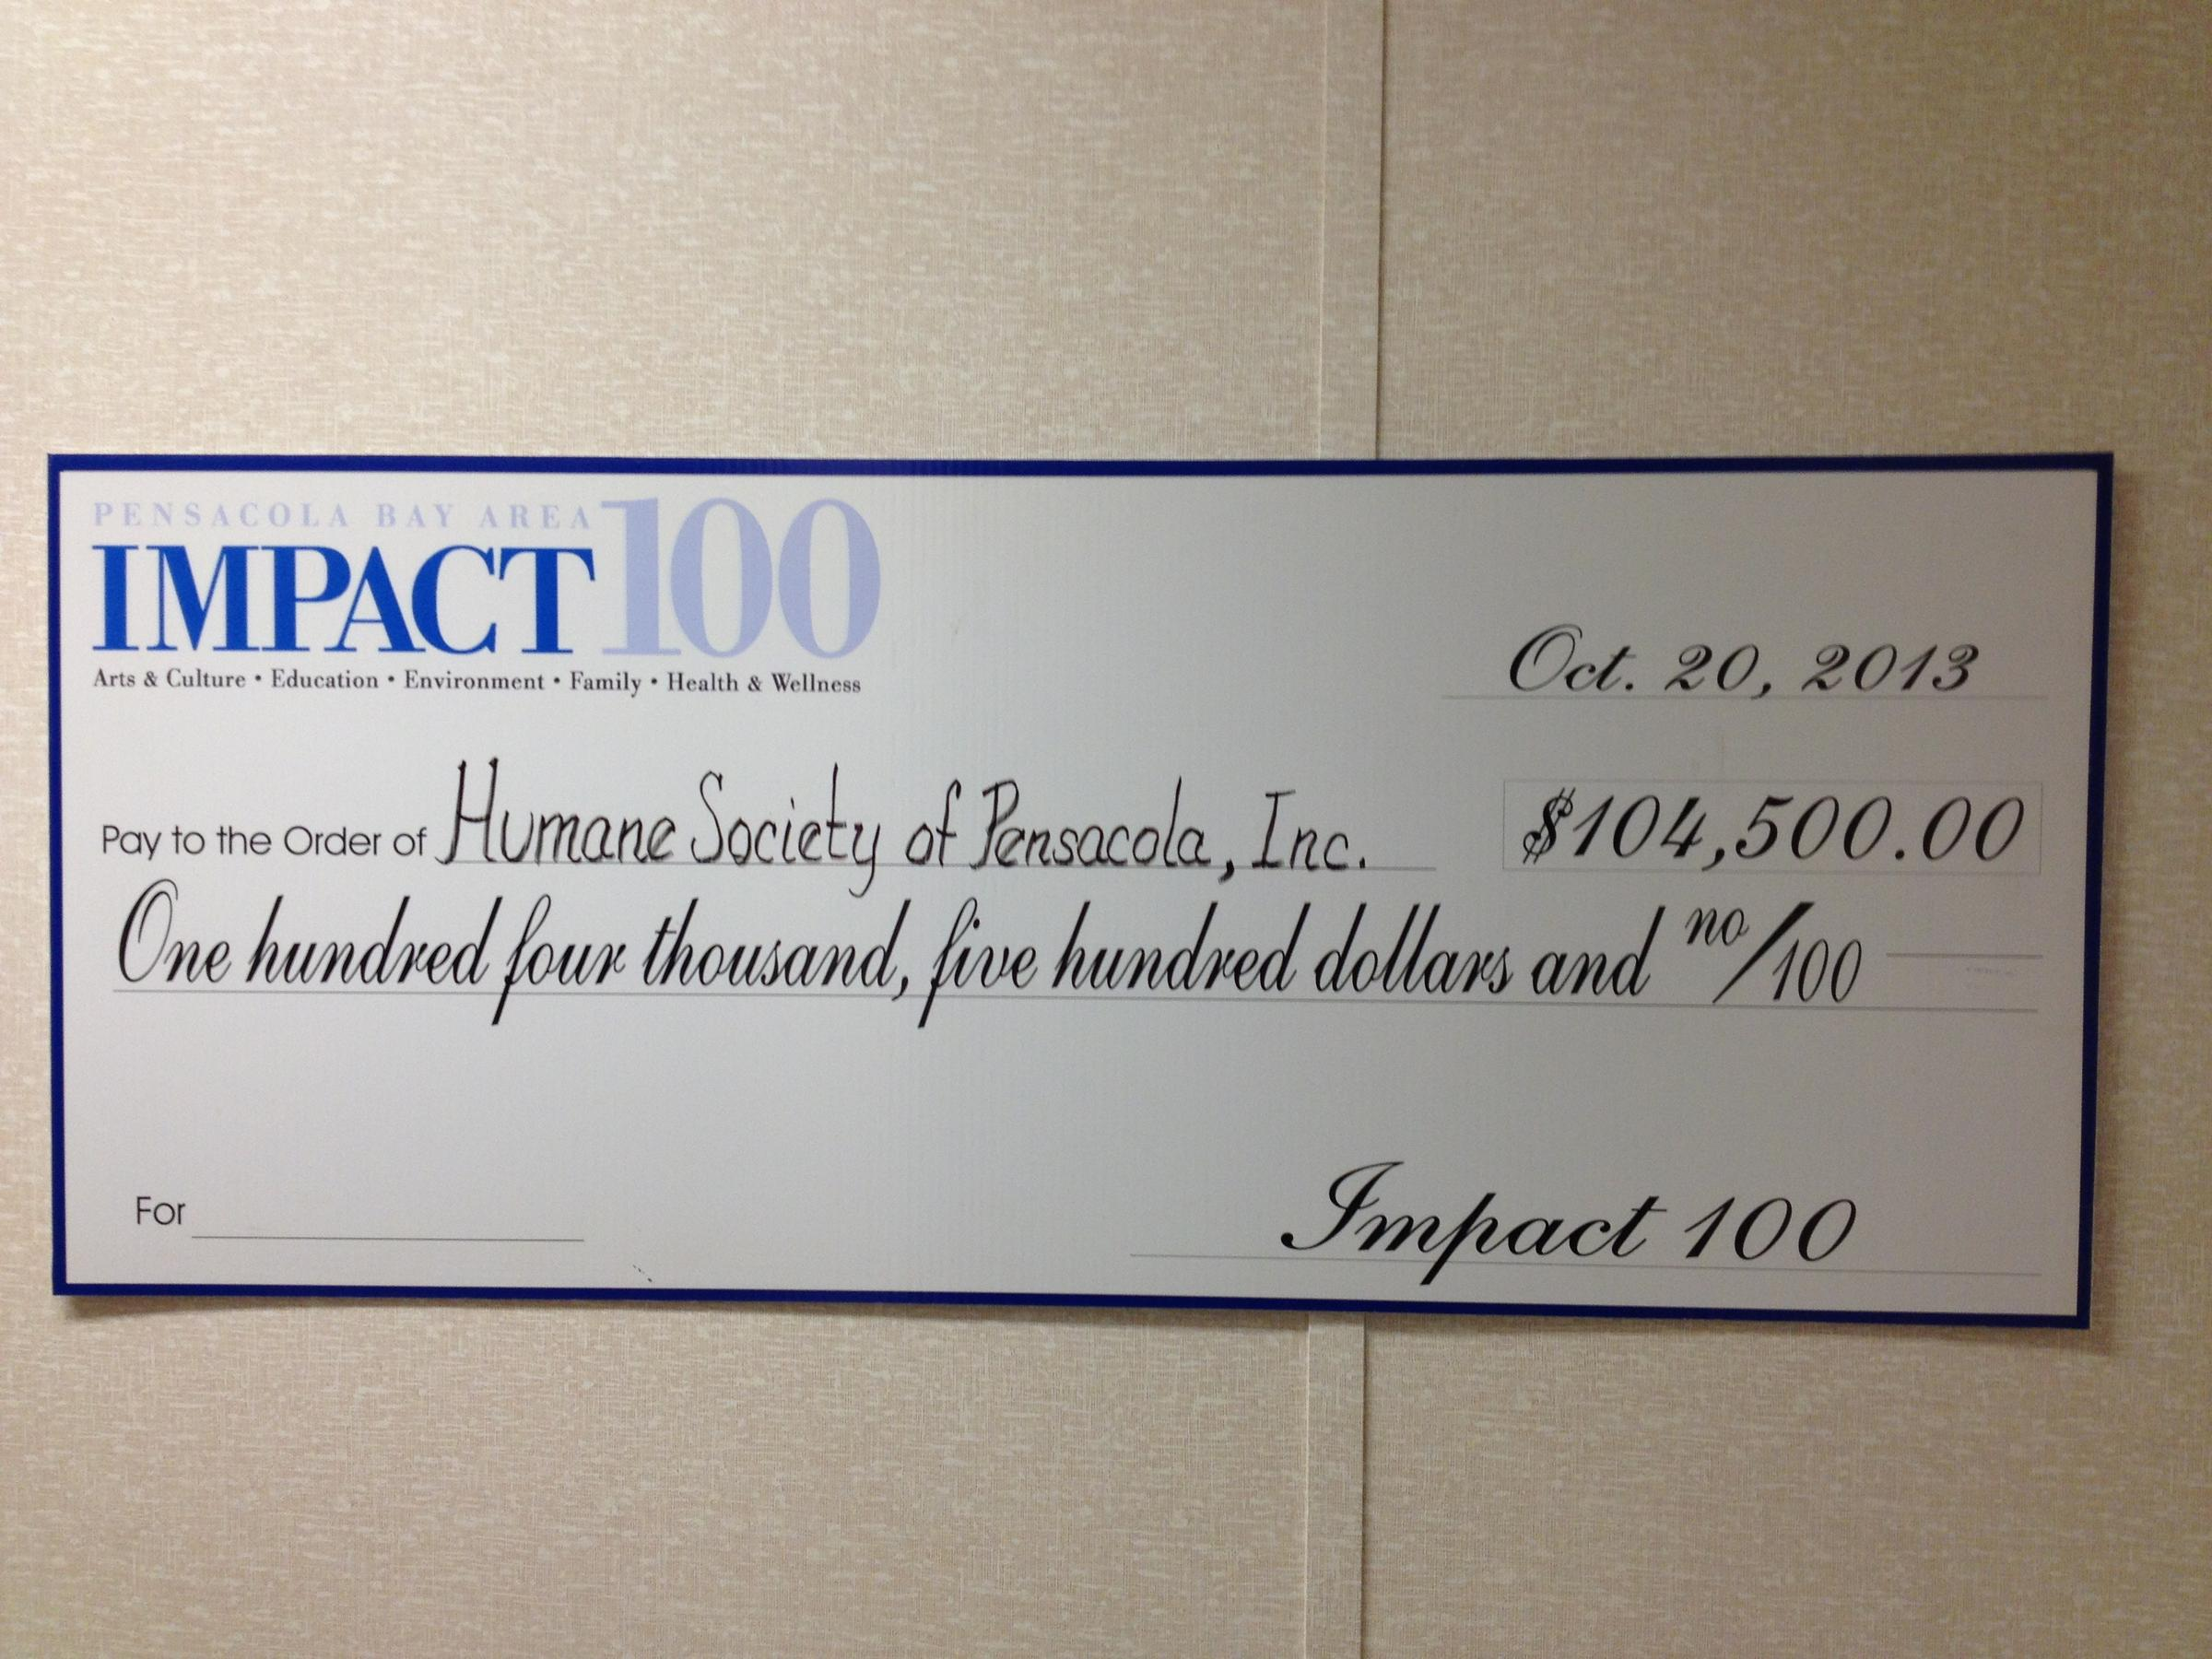 How To Write · It Was A Grant From Impact 100 That Finally Made The Clinic